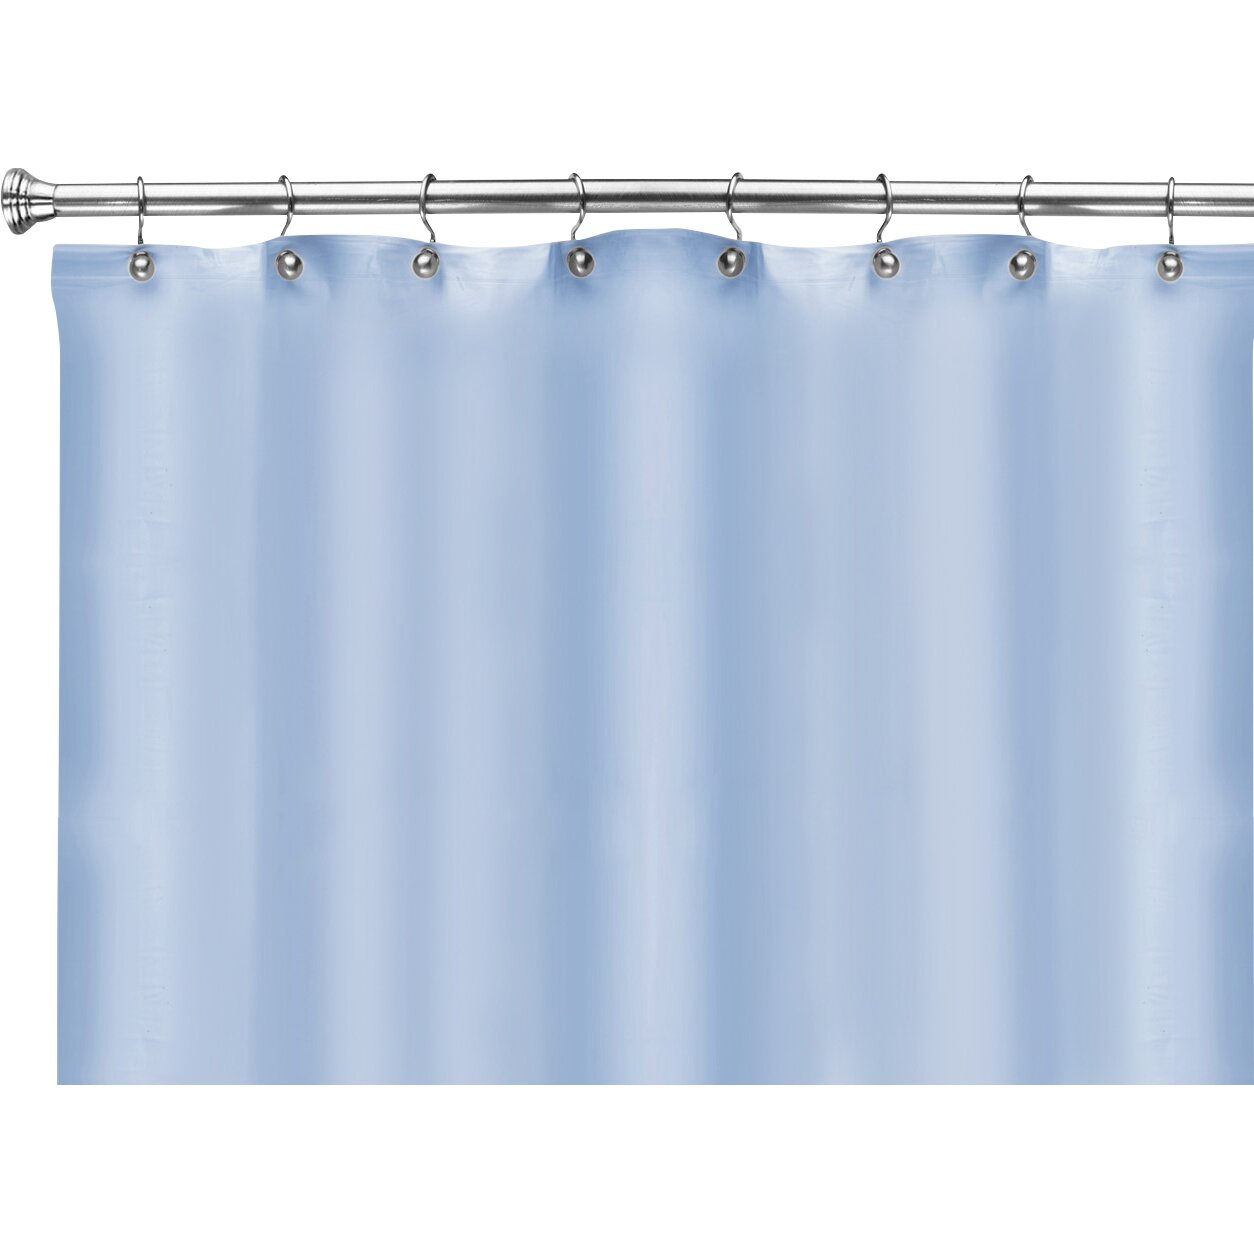 Popular bath products vinyl hotel shower curtain liner for Bathroom liner